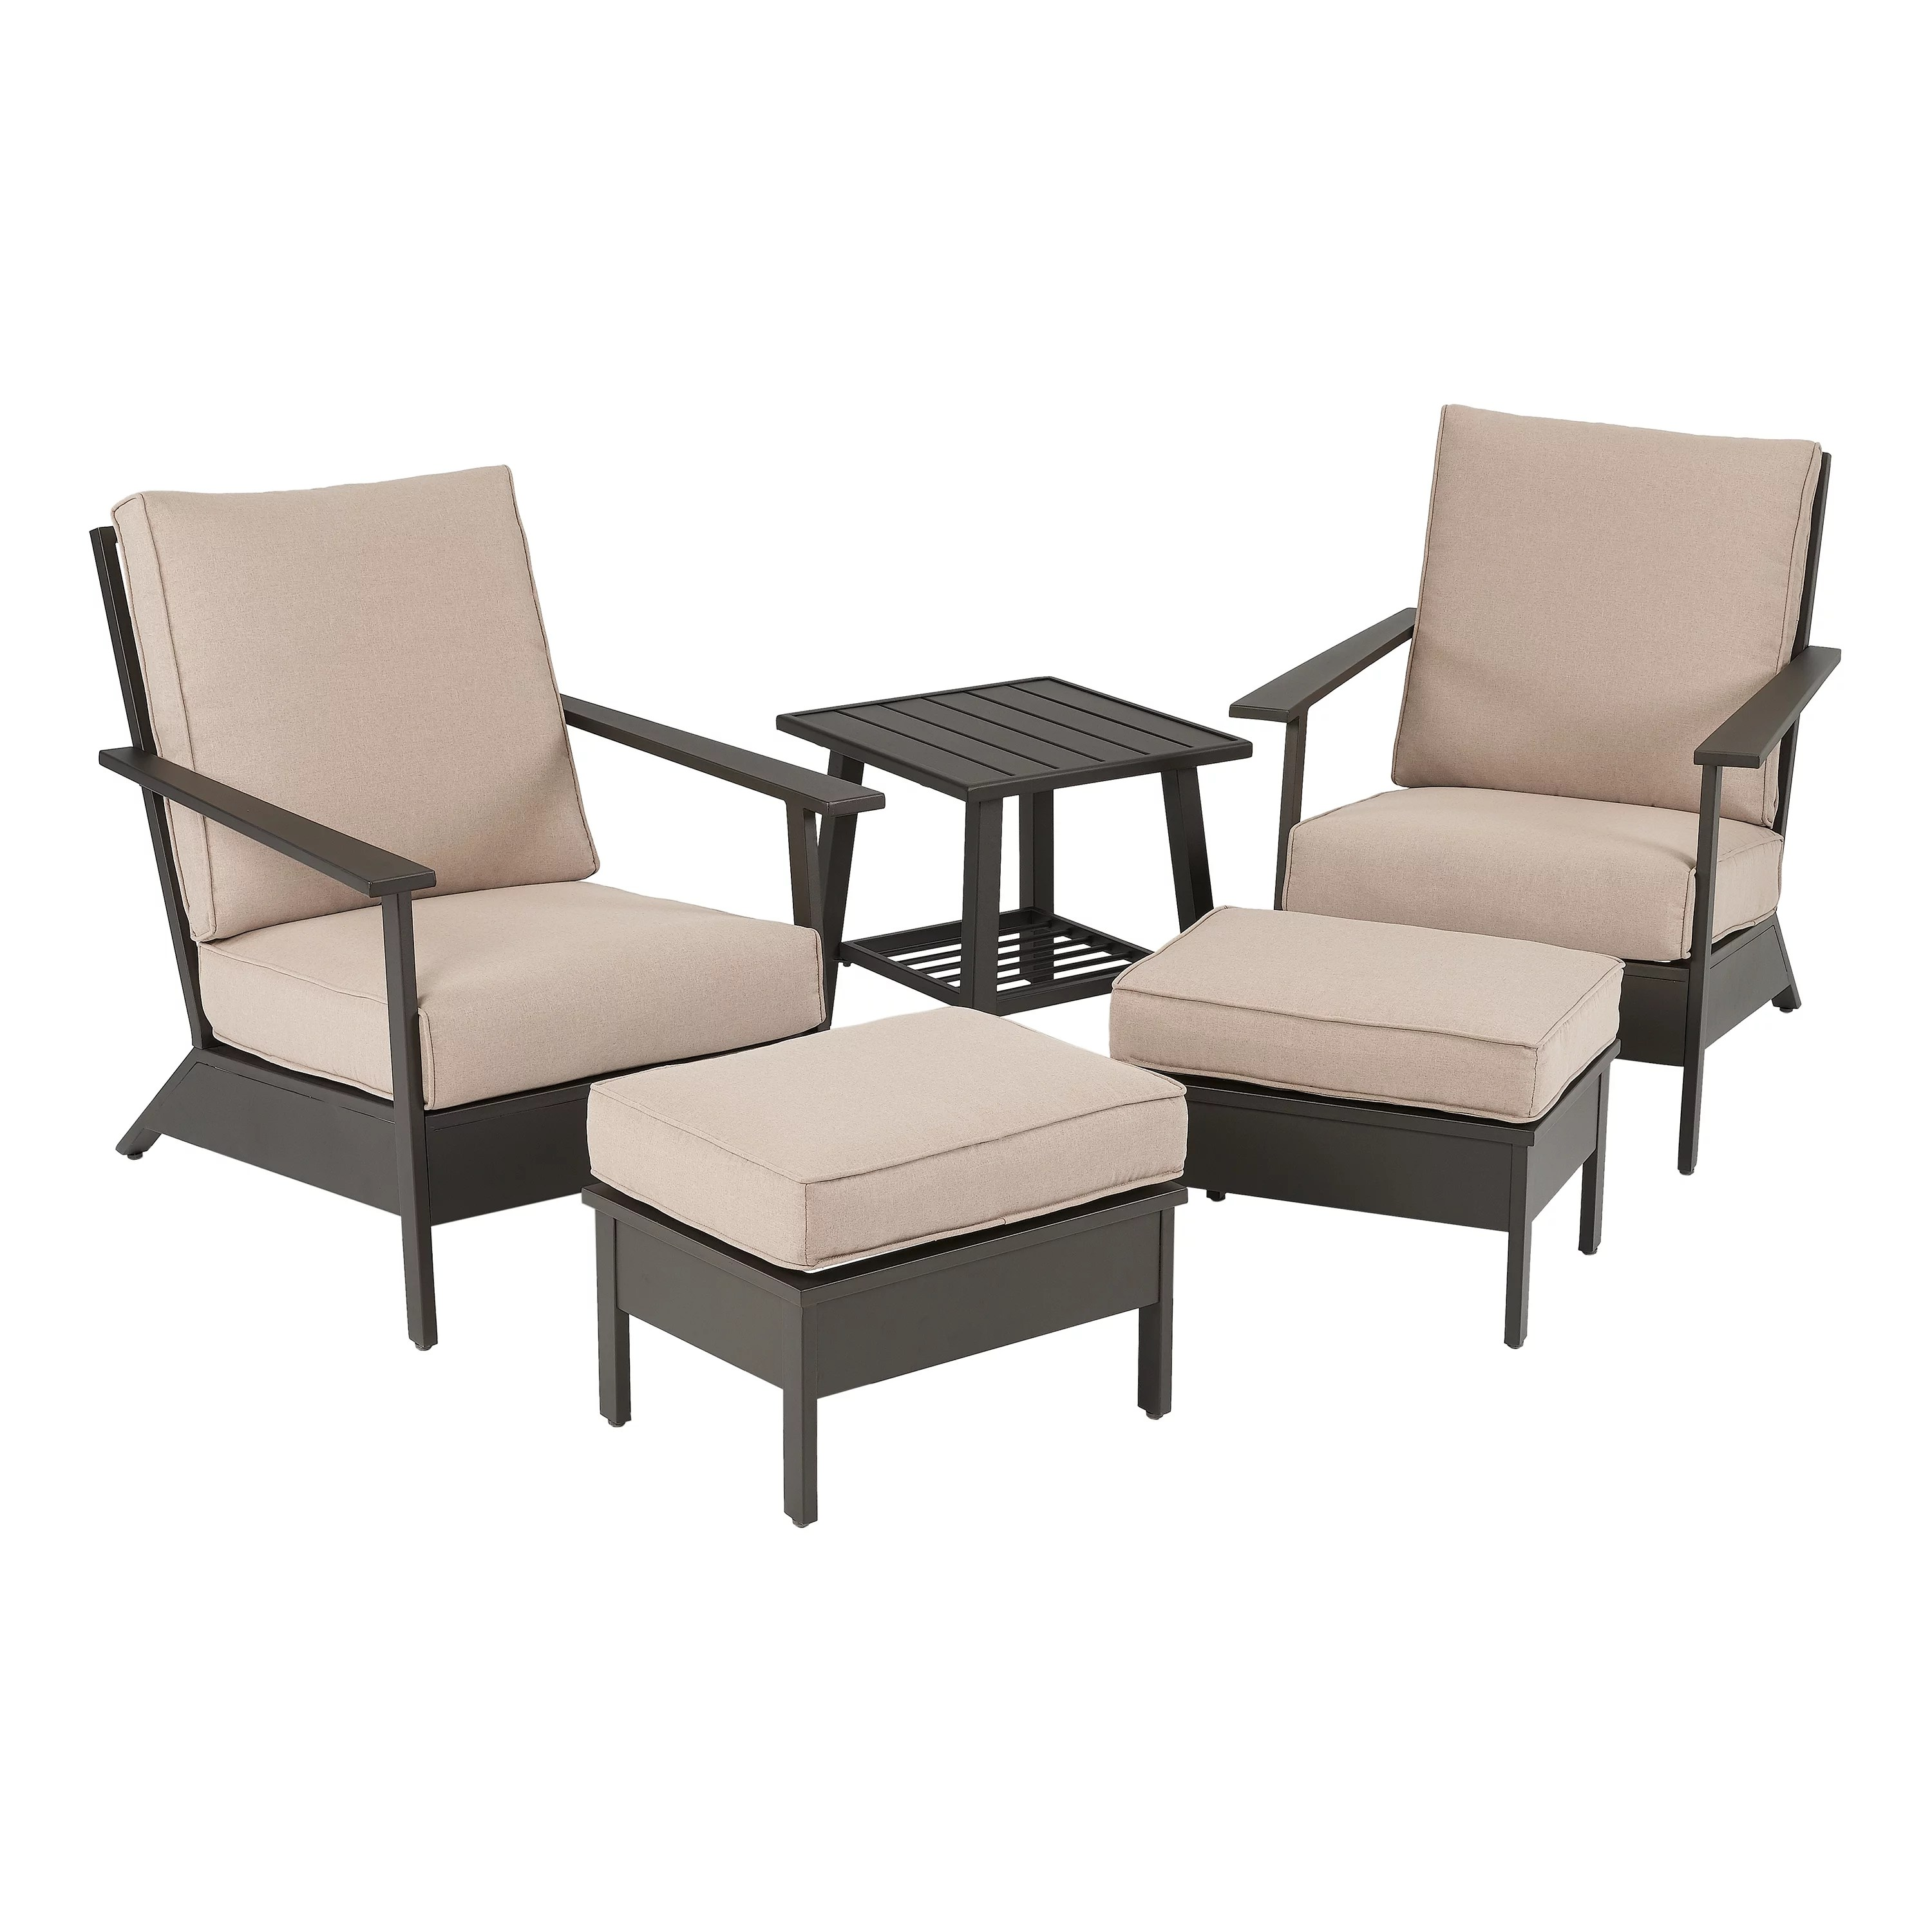 costway 3 pcs patio rattan furniture set coffee table 2 rattan chair w red cushions